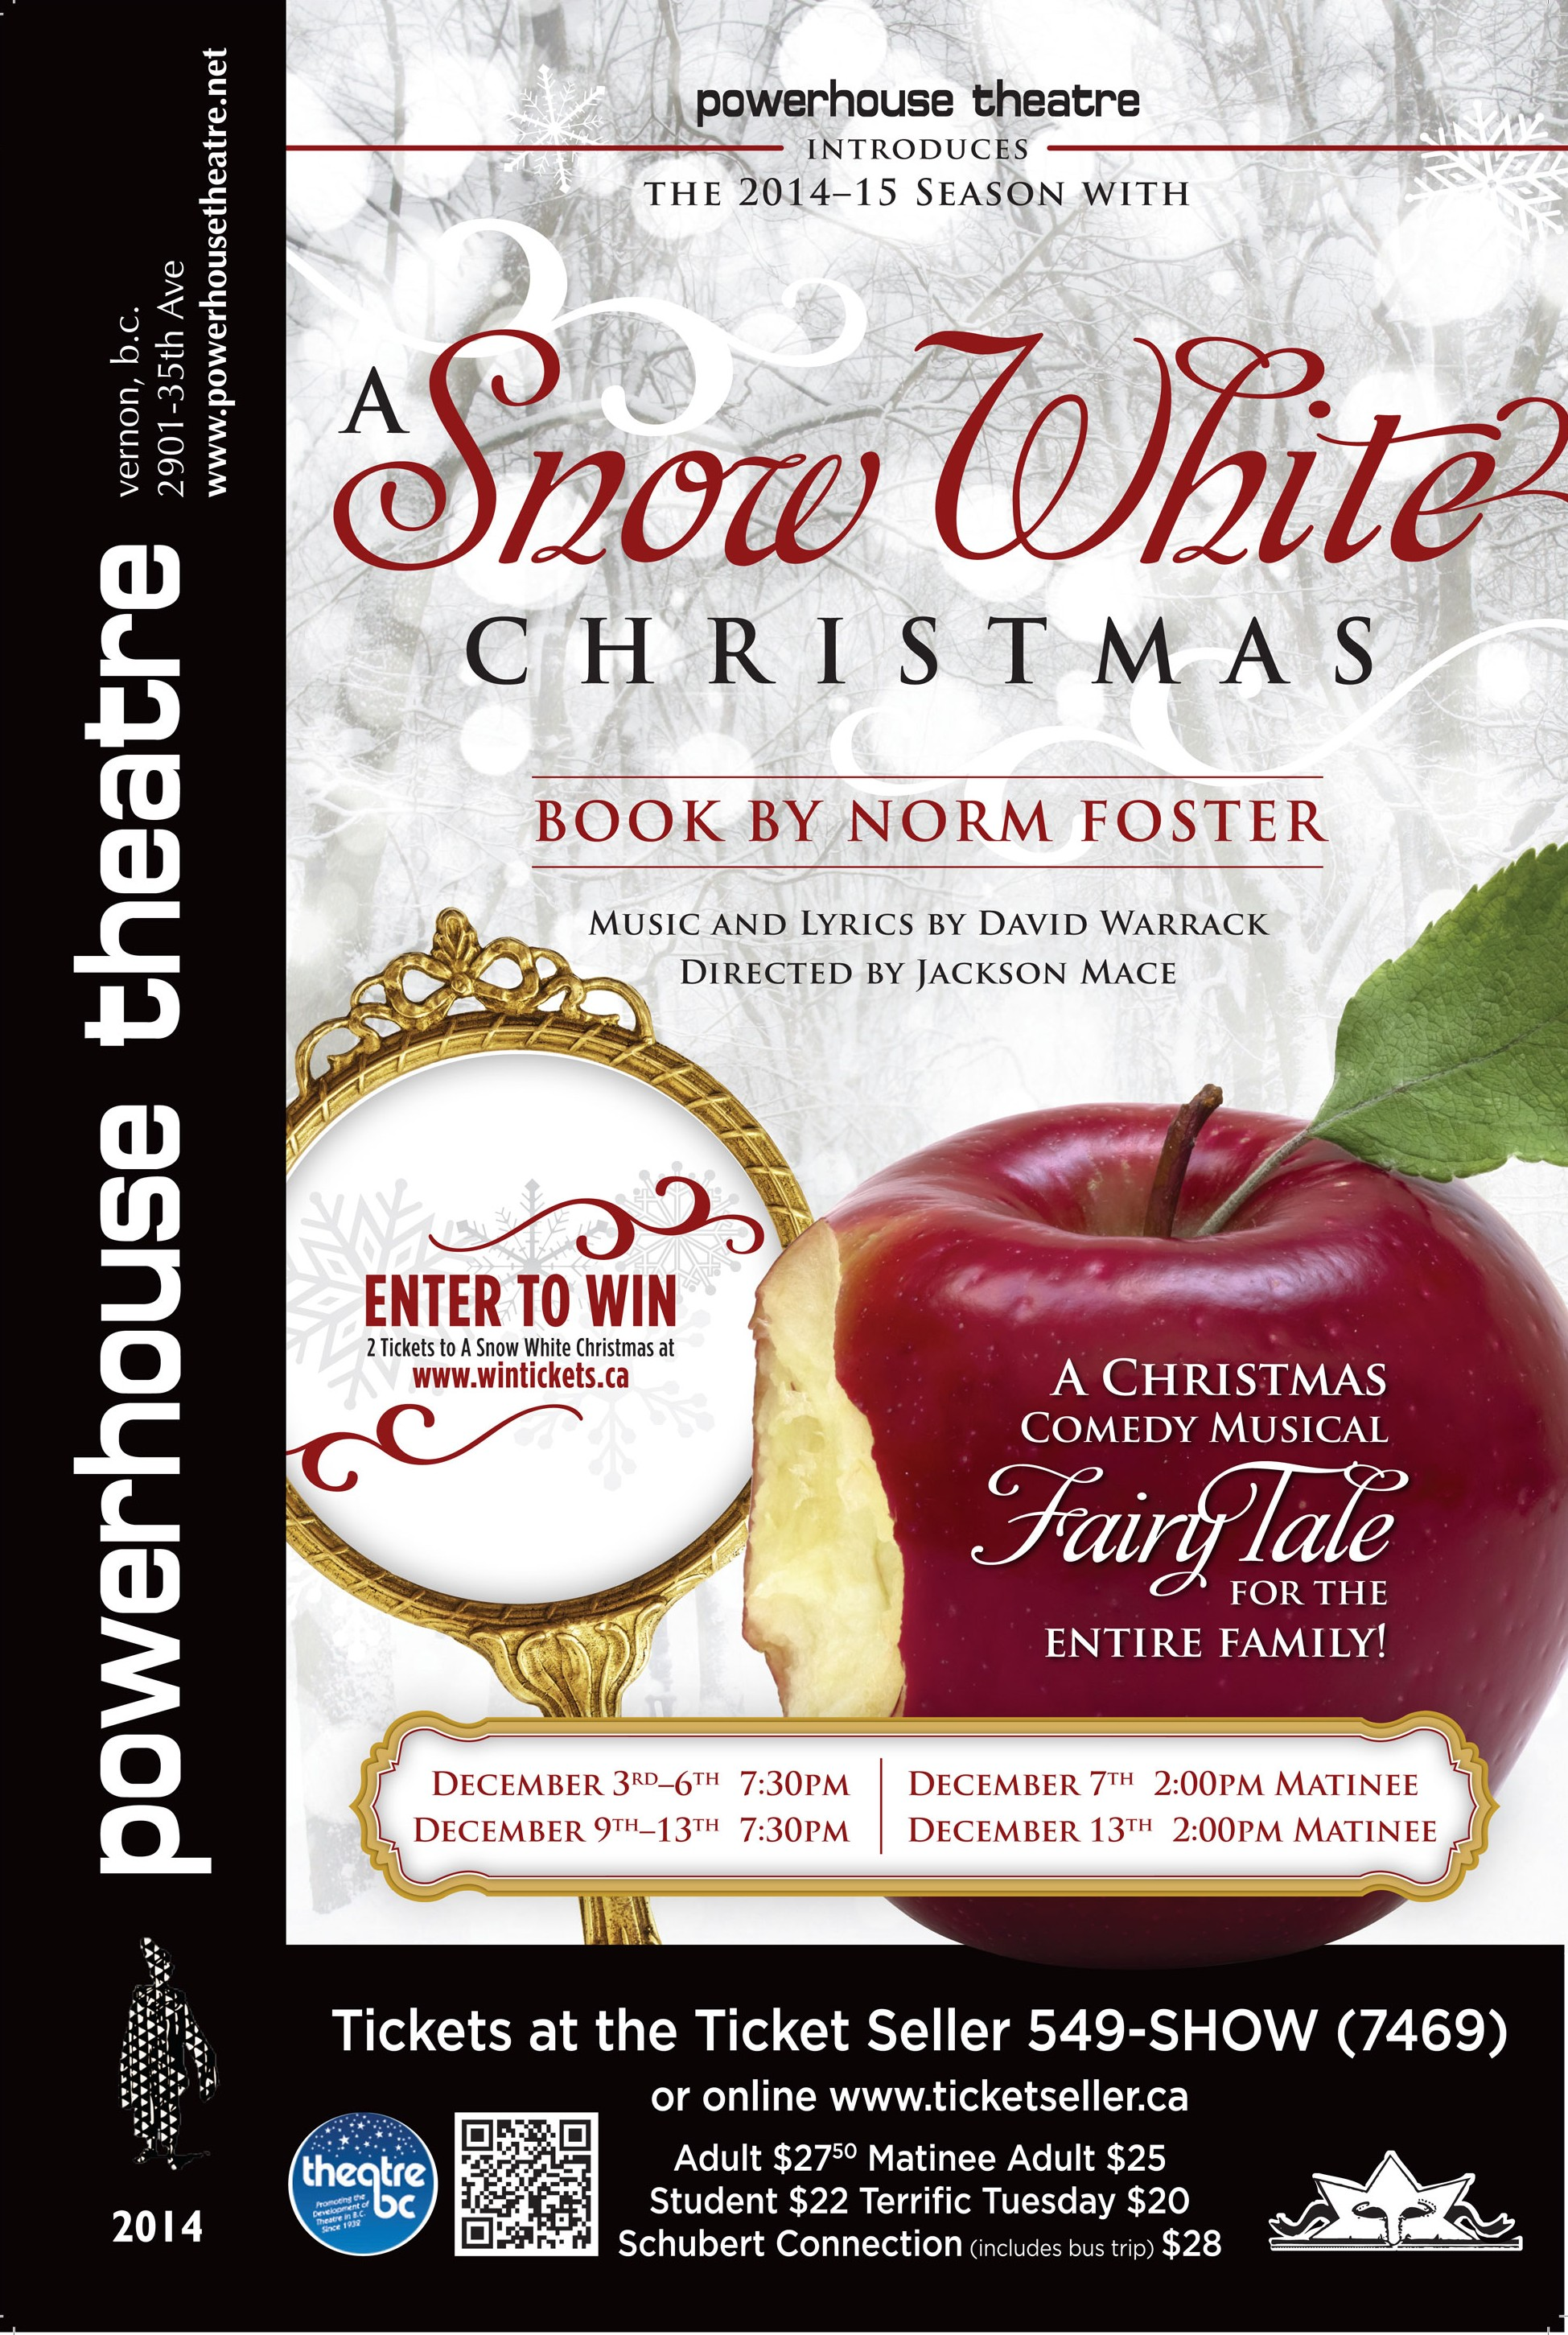 A Snow White Christmas.A Snow White Christmas Powerhouse Theatre